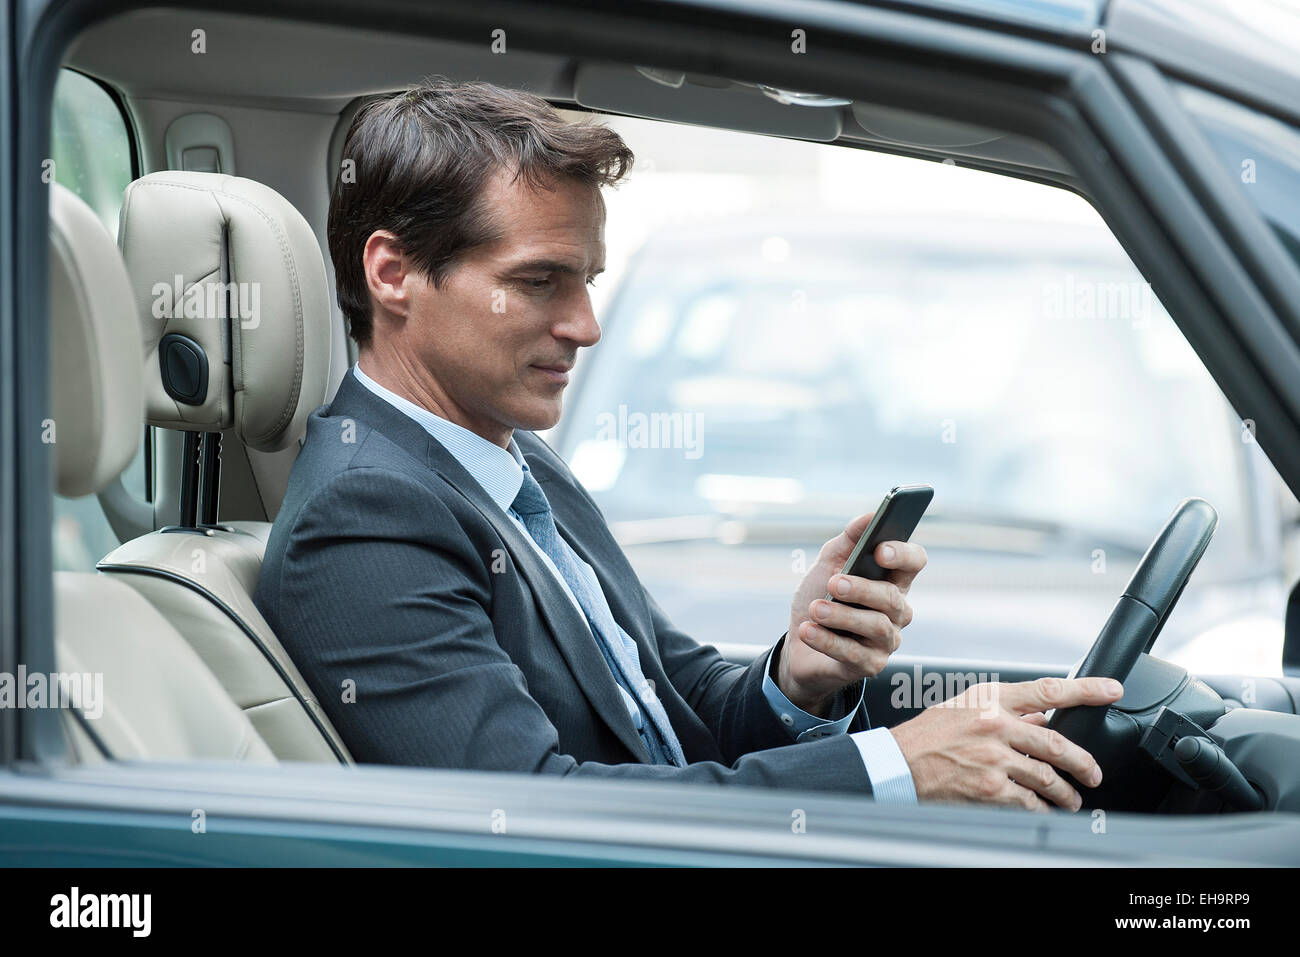 Man looking at cell phone while driving - Stock Image